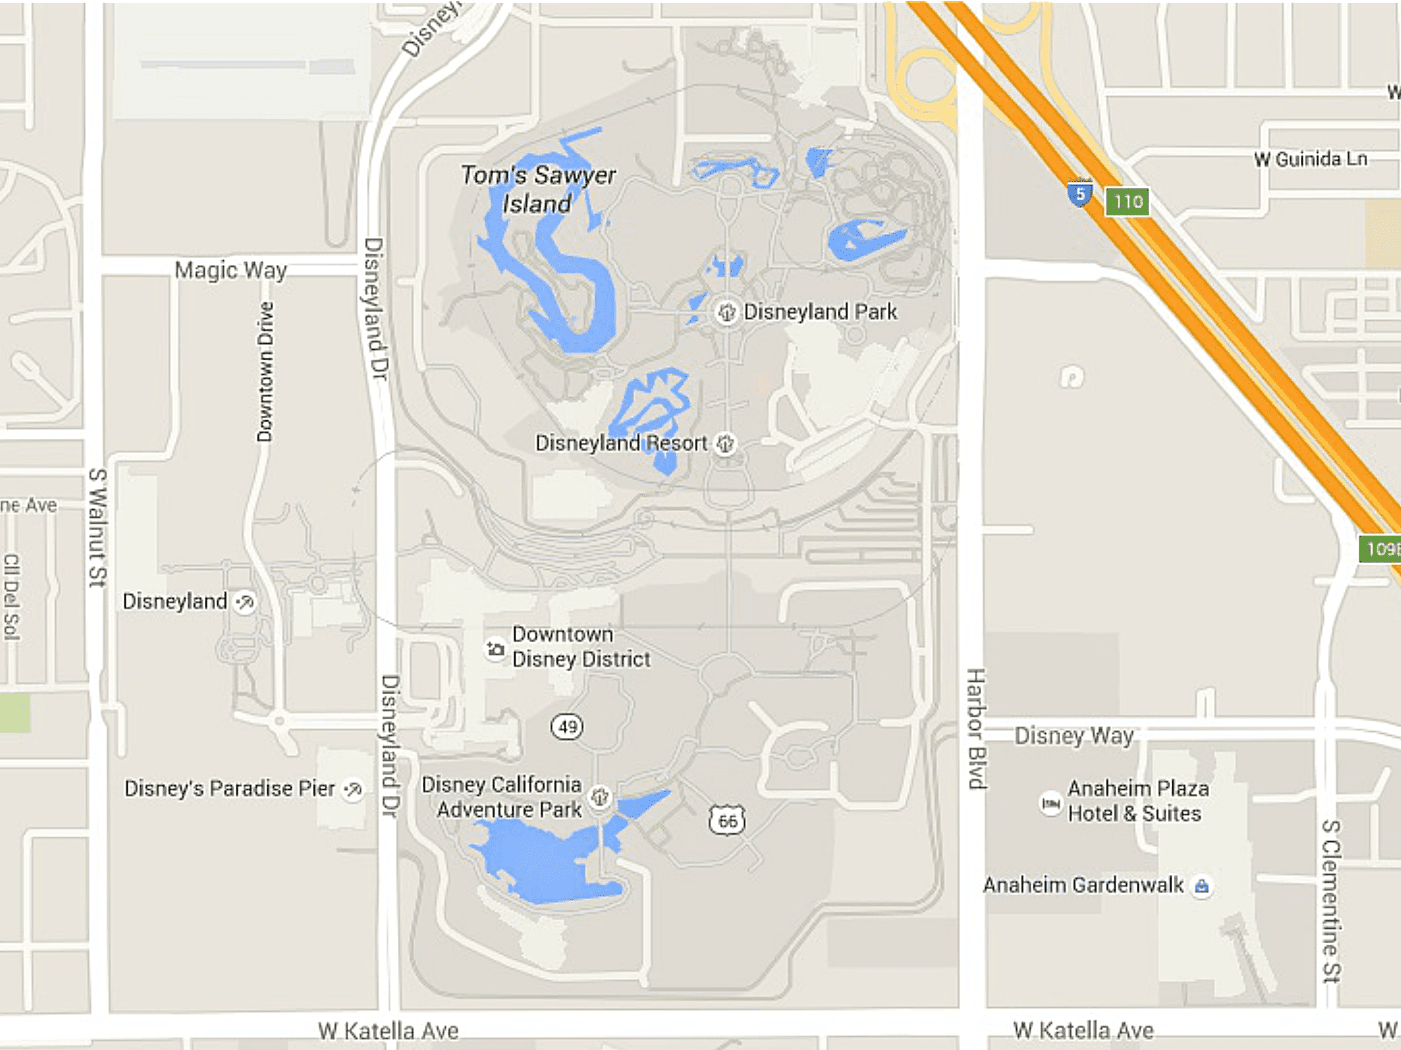 Maps of Disneyland Resort in Anaheim California